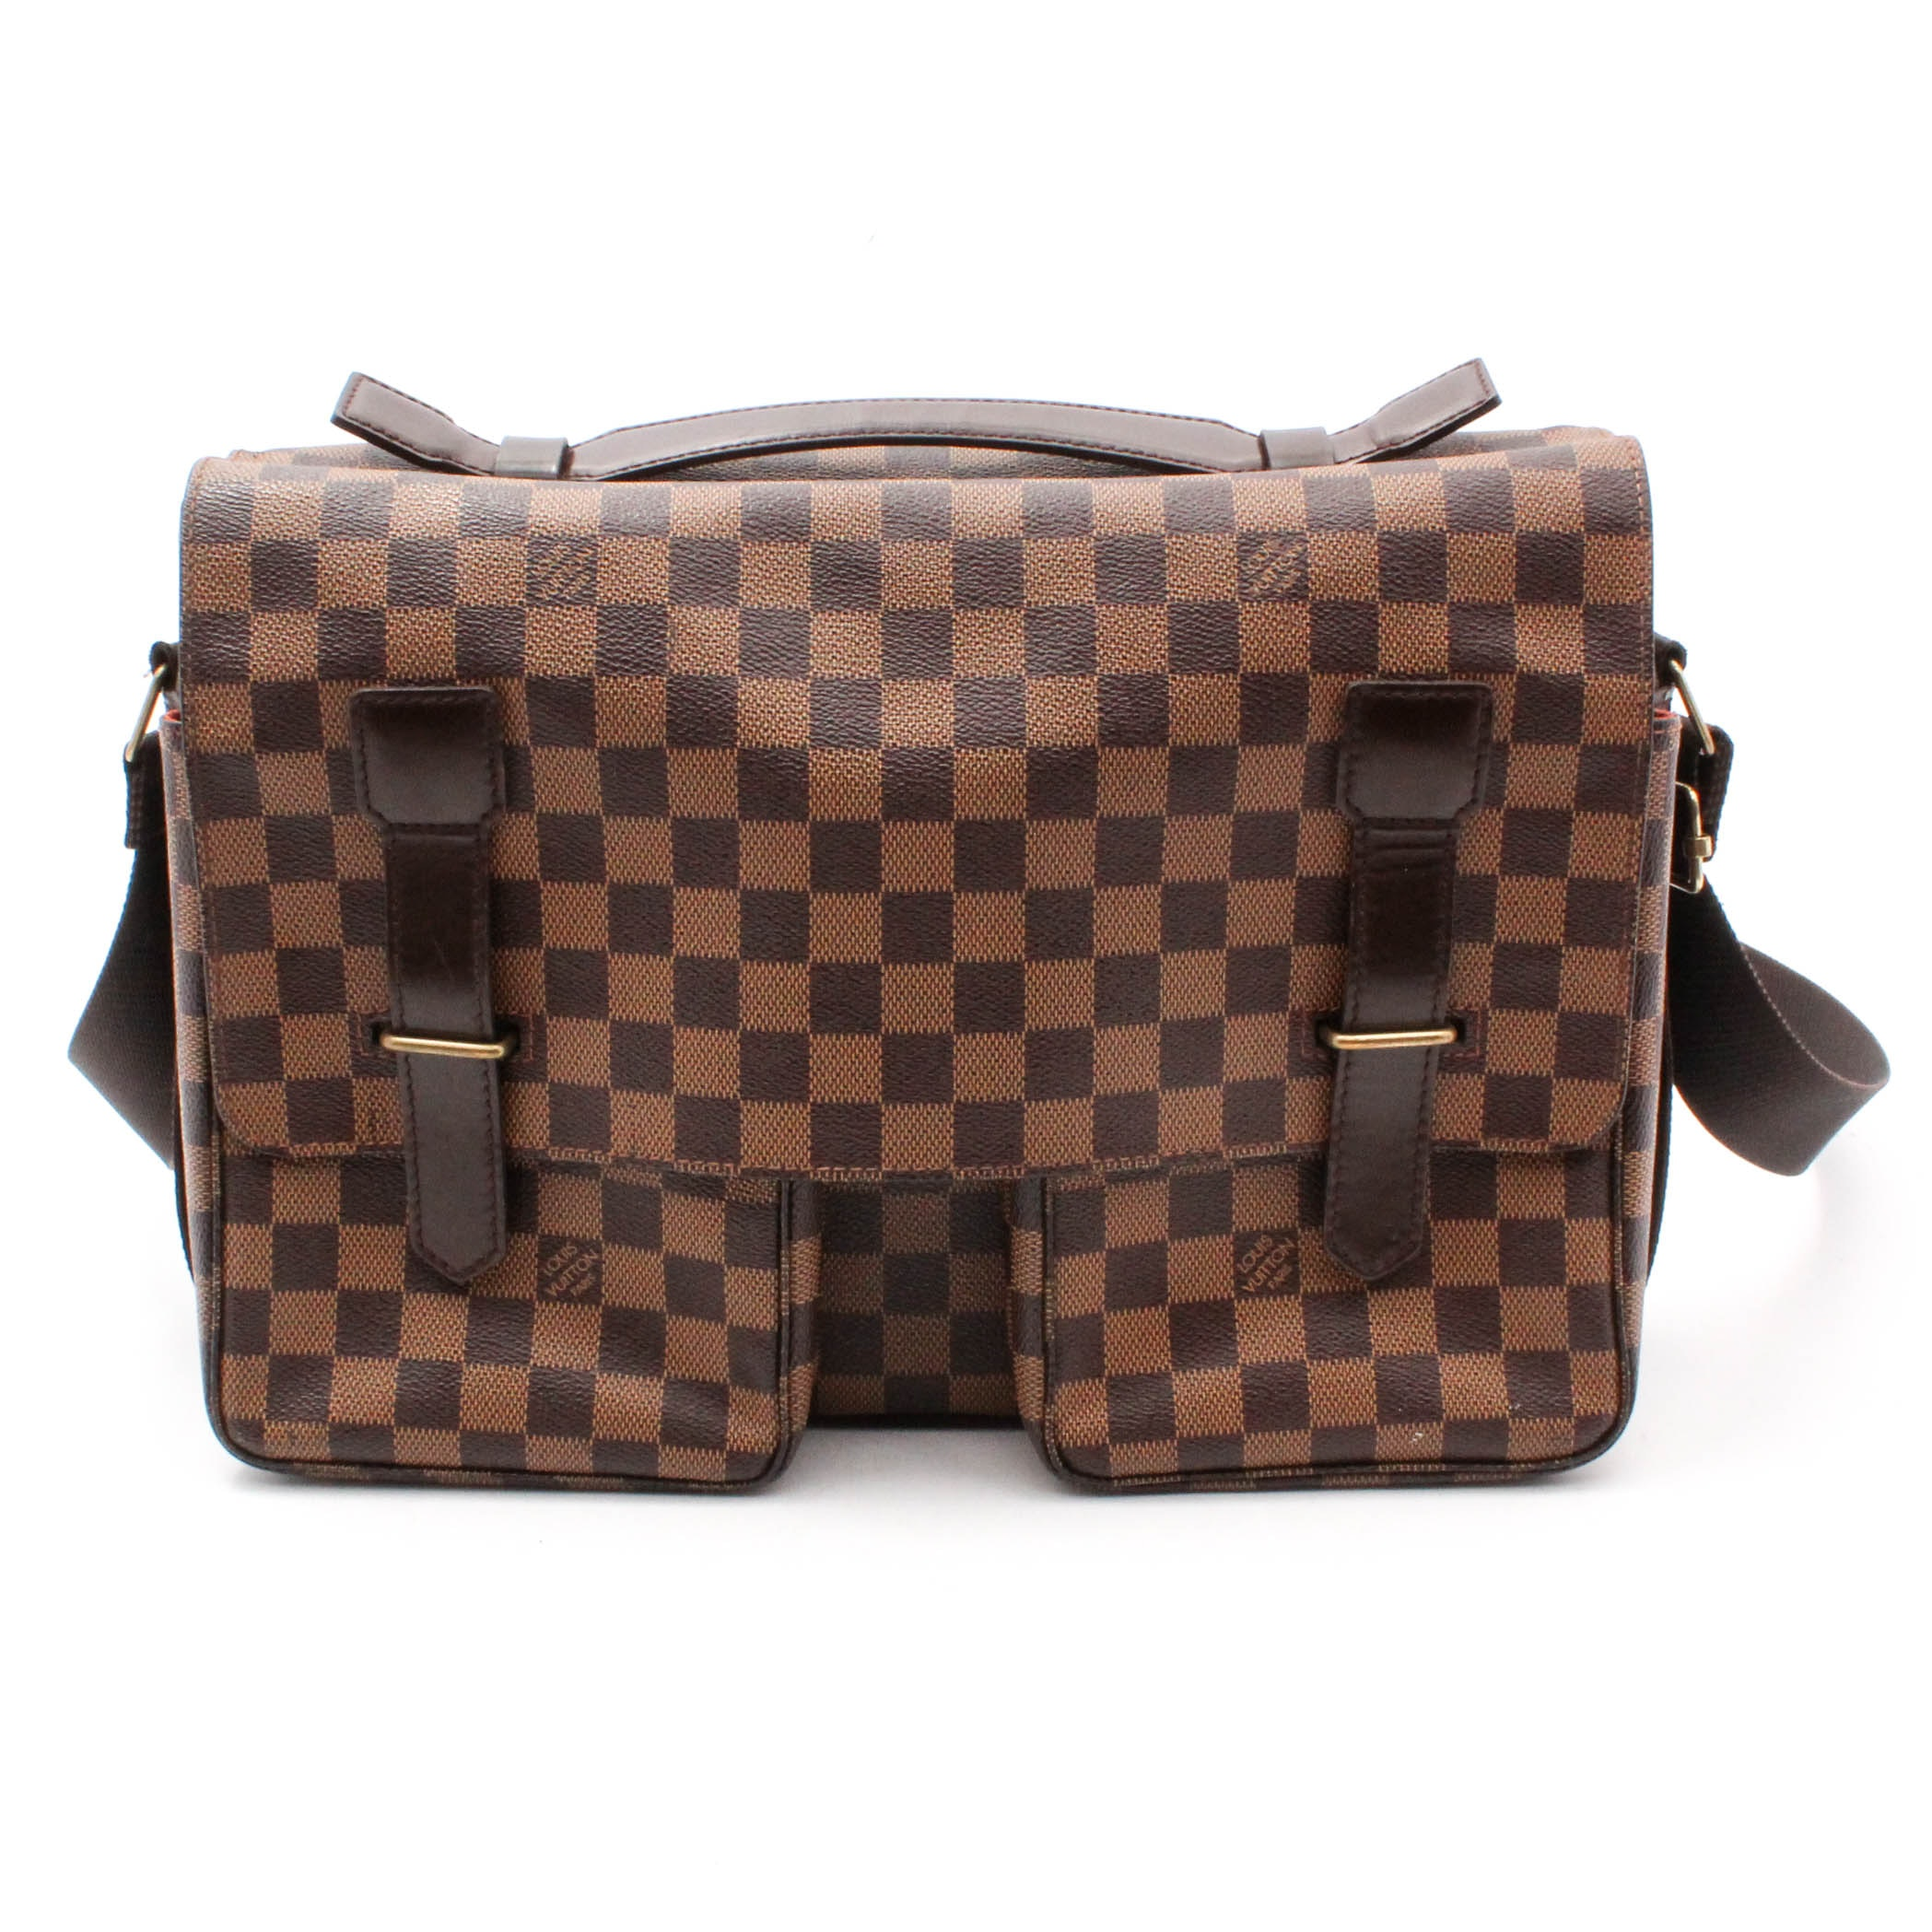 2004 Louis Vuitton Damier Crossbody Messenger Bag